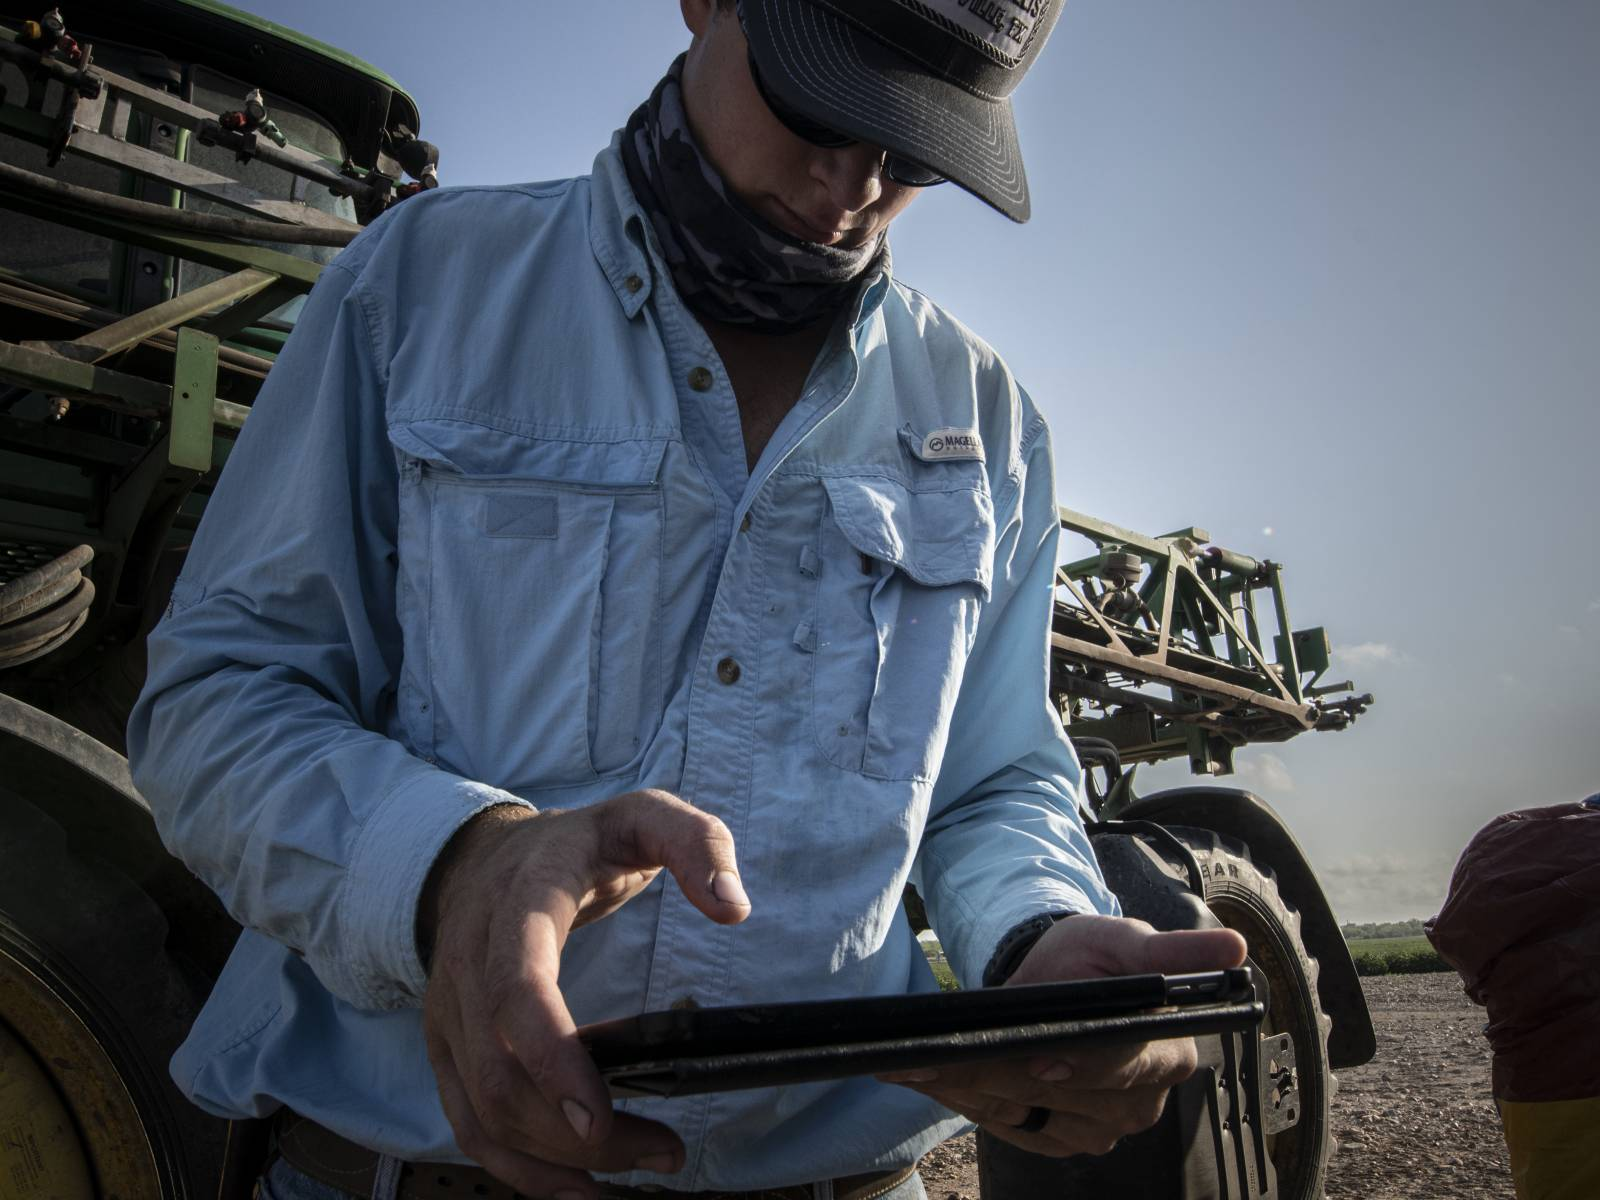 A young man uses a tablet while working on a Texas farm